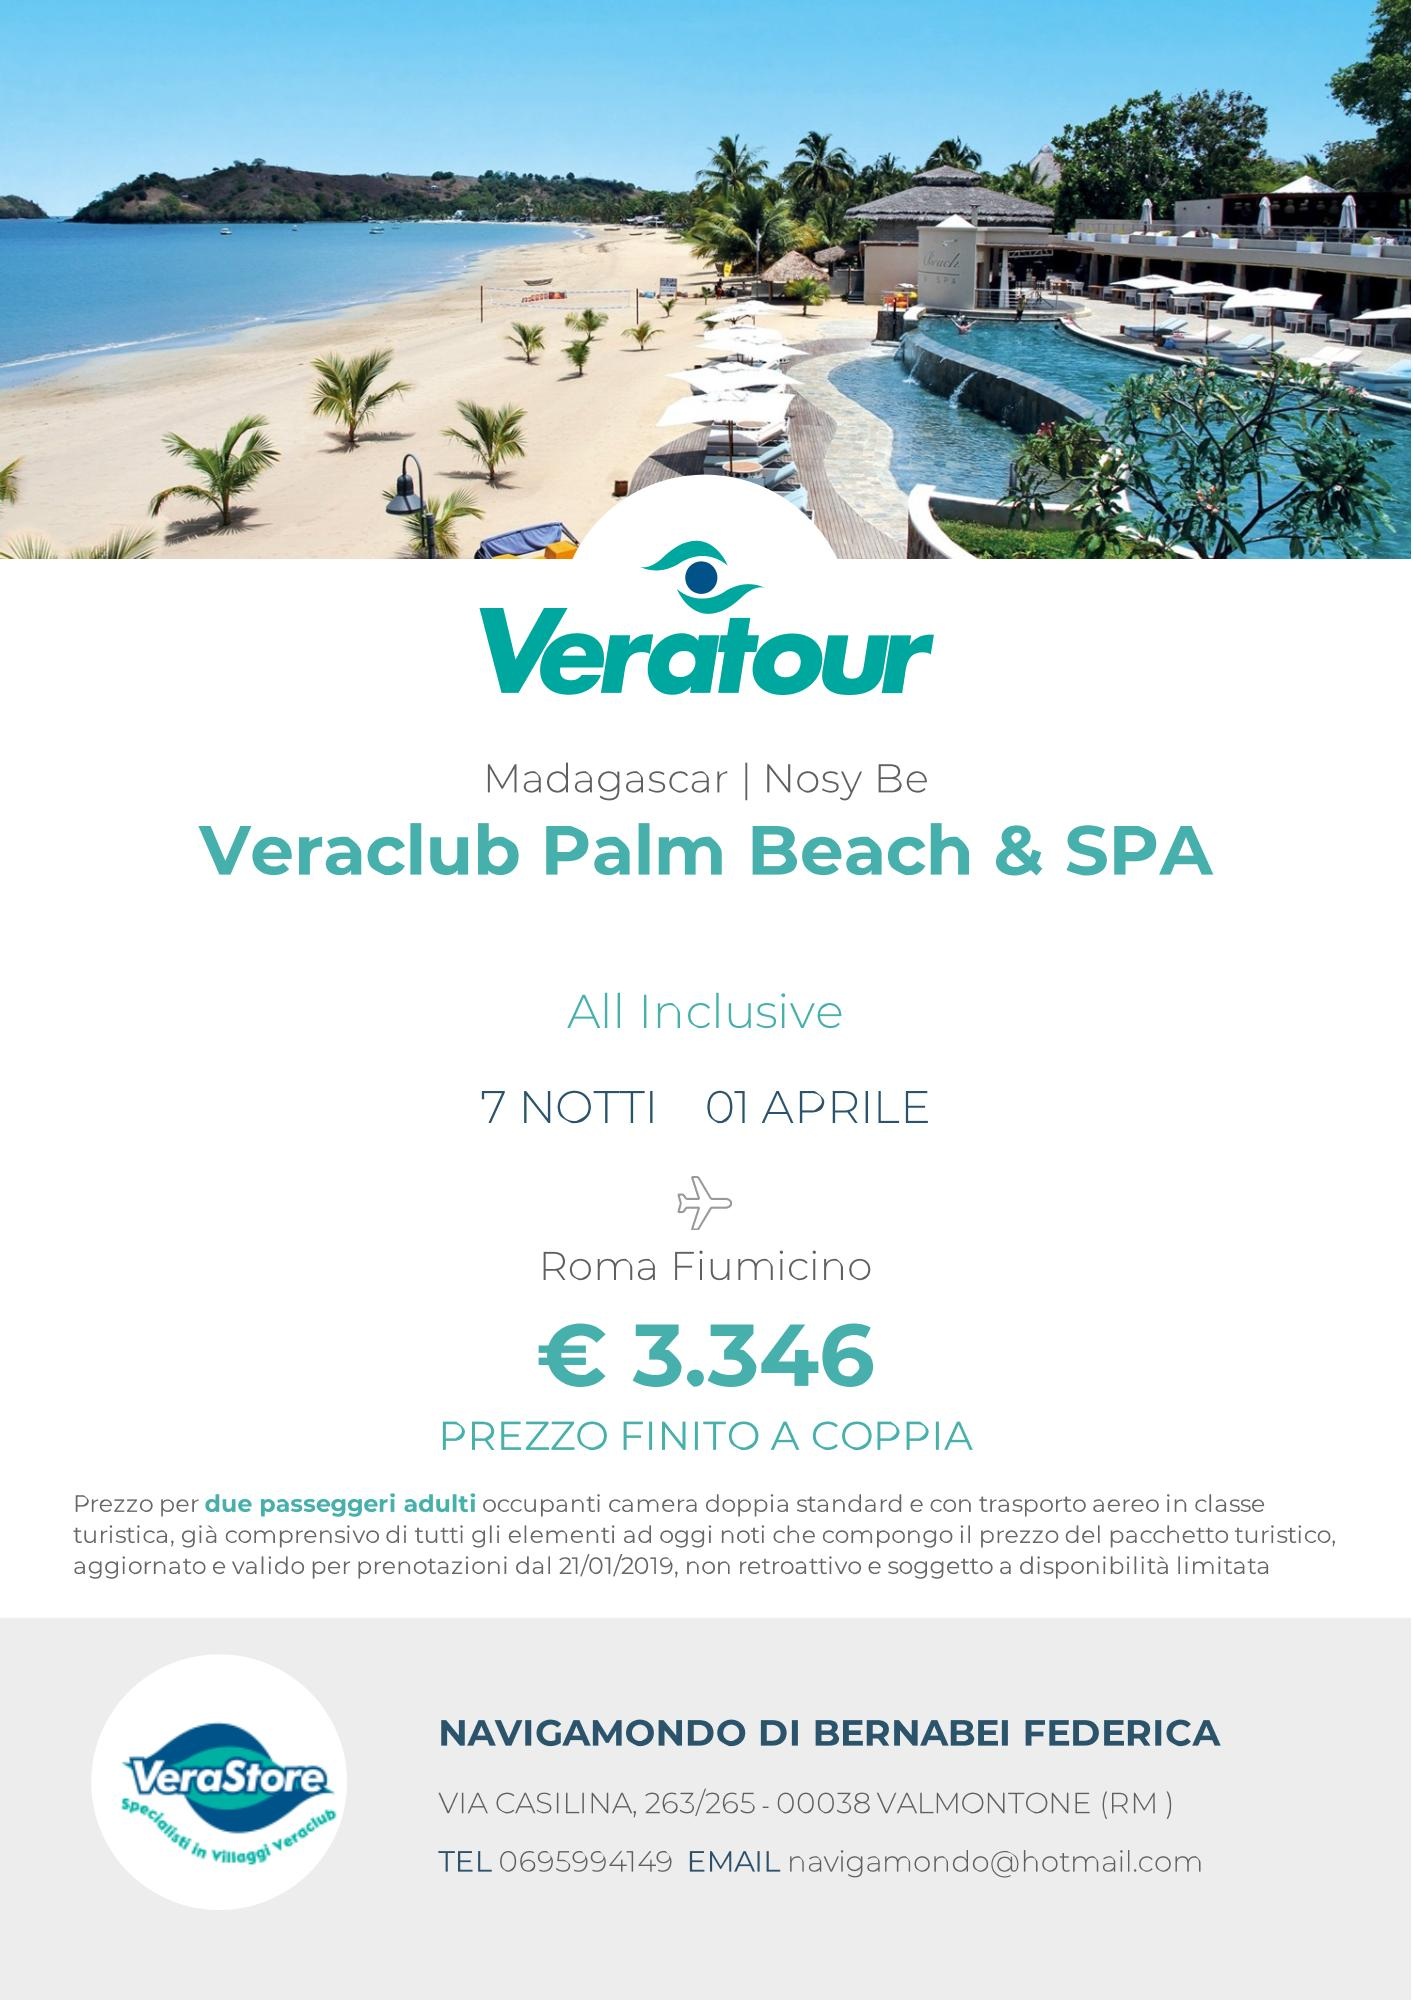 Veraclub Palm Beach & SPA